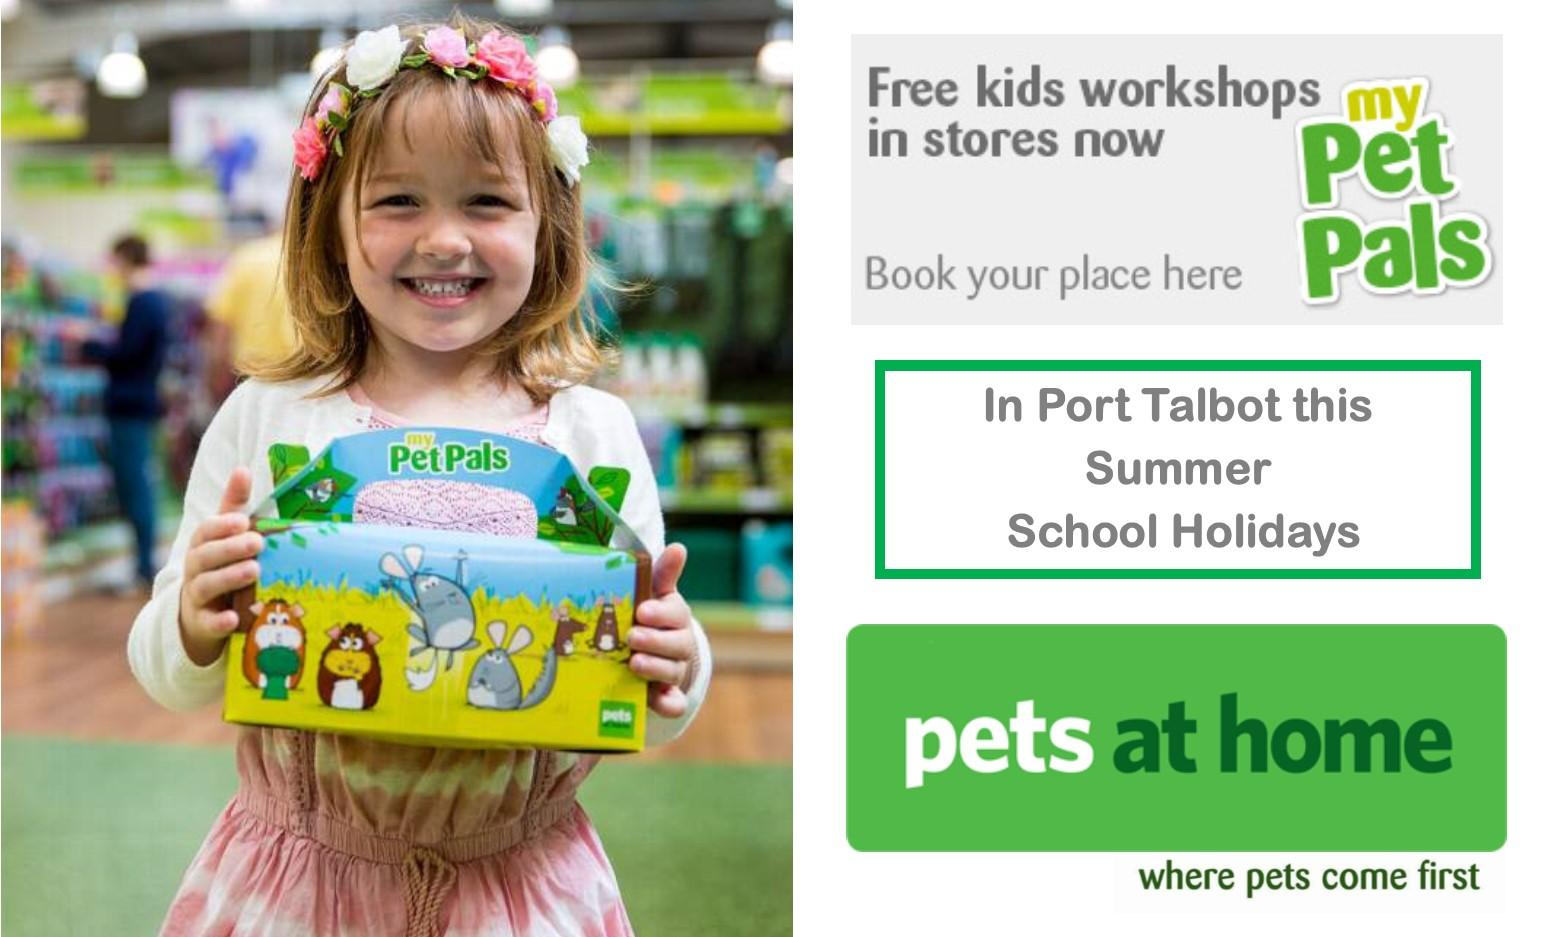 Summer Friendly Fish Pets at Home Workshop in Port Talbot